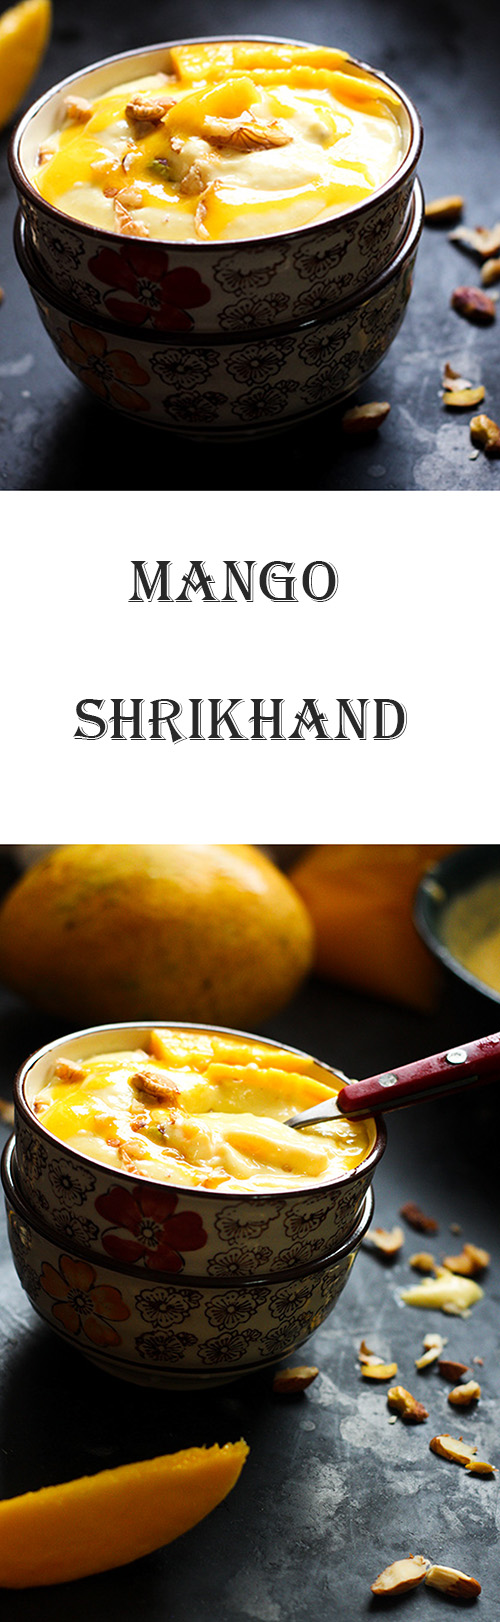 Mango Shrikhand or amrakhand recipe is a delicious dessert made with yogurt and mango.